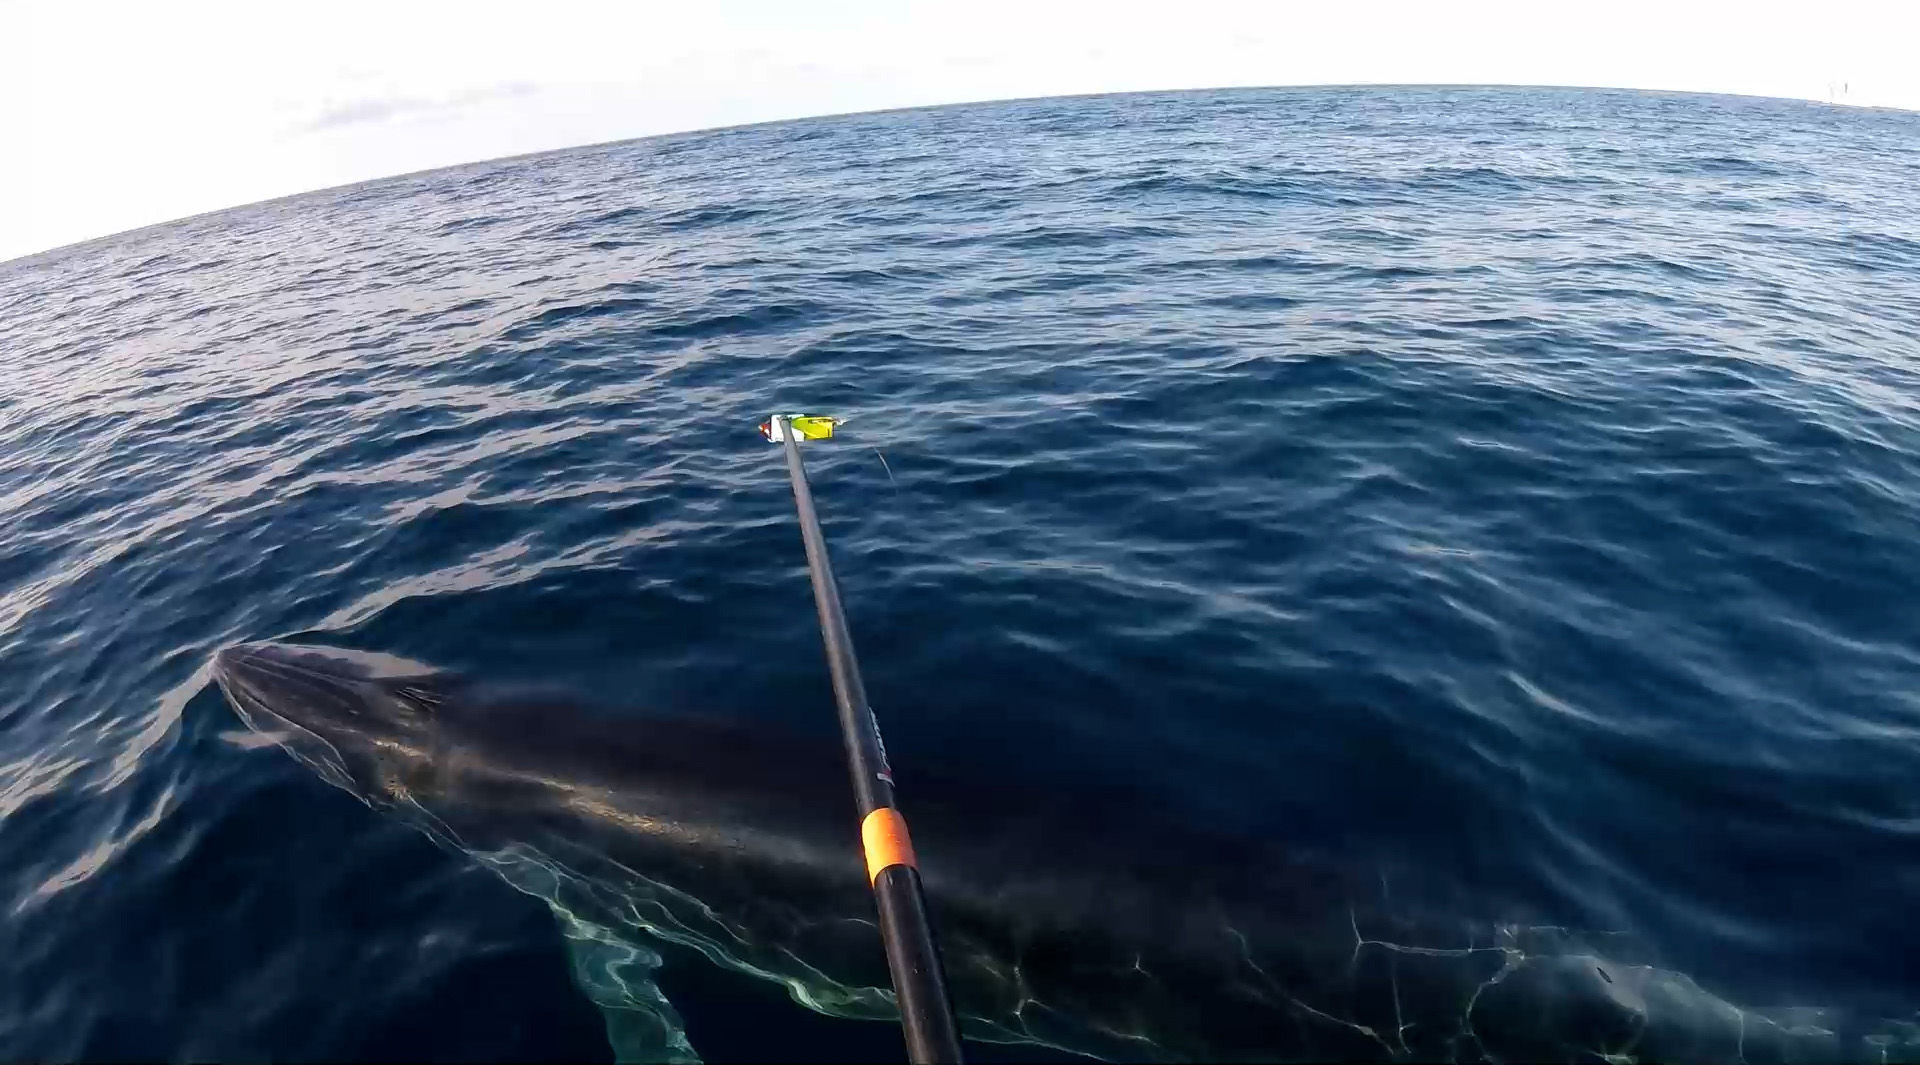 Researcher with Dr. Garrison's team deploys telemetry tag on Rice's whale, which will track whale's location and collect data on its environment, July 2021.